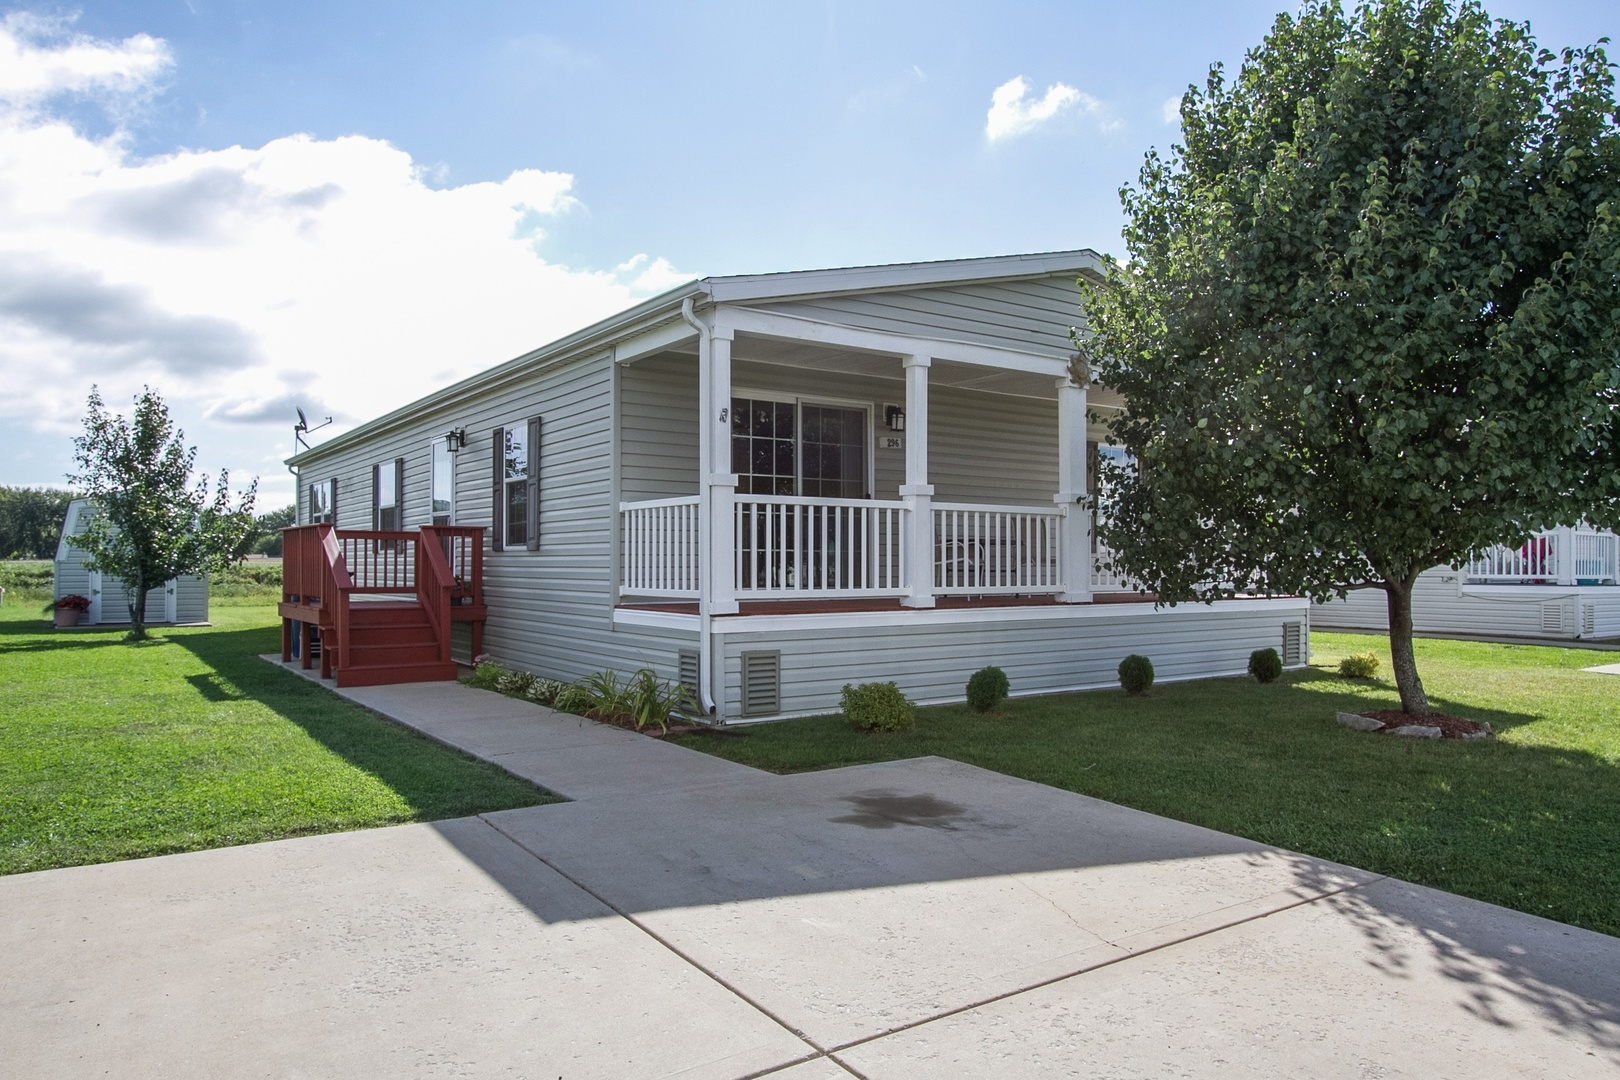 Mobile Homes for sale in SAUK VILLAGE, Illinois | SAUK VILLAGE MLS on homes for rent illinois, luxury homes illinois, historic homes in illinois,